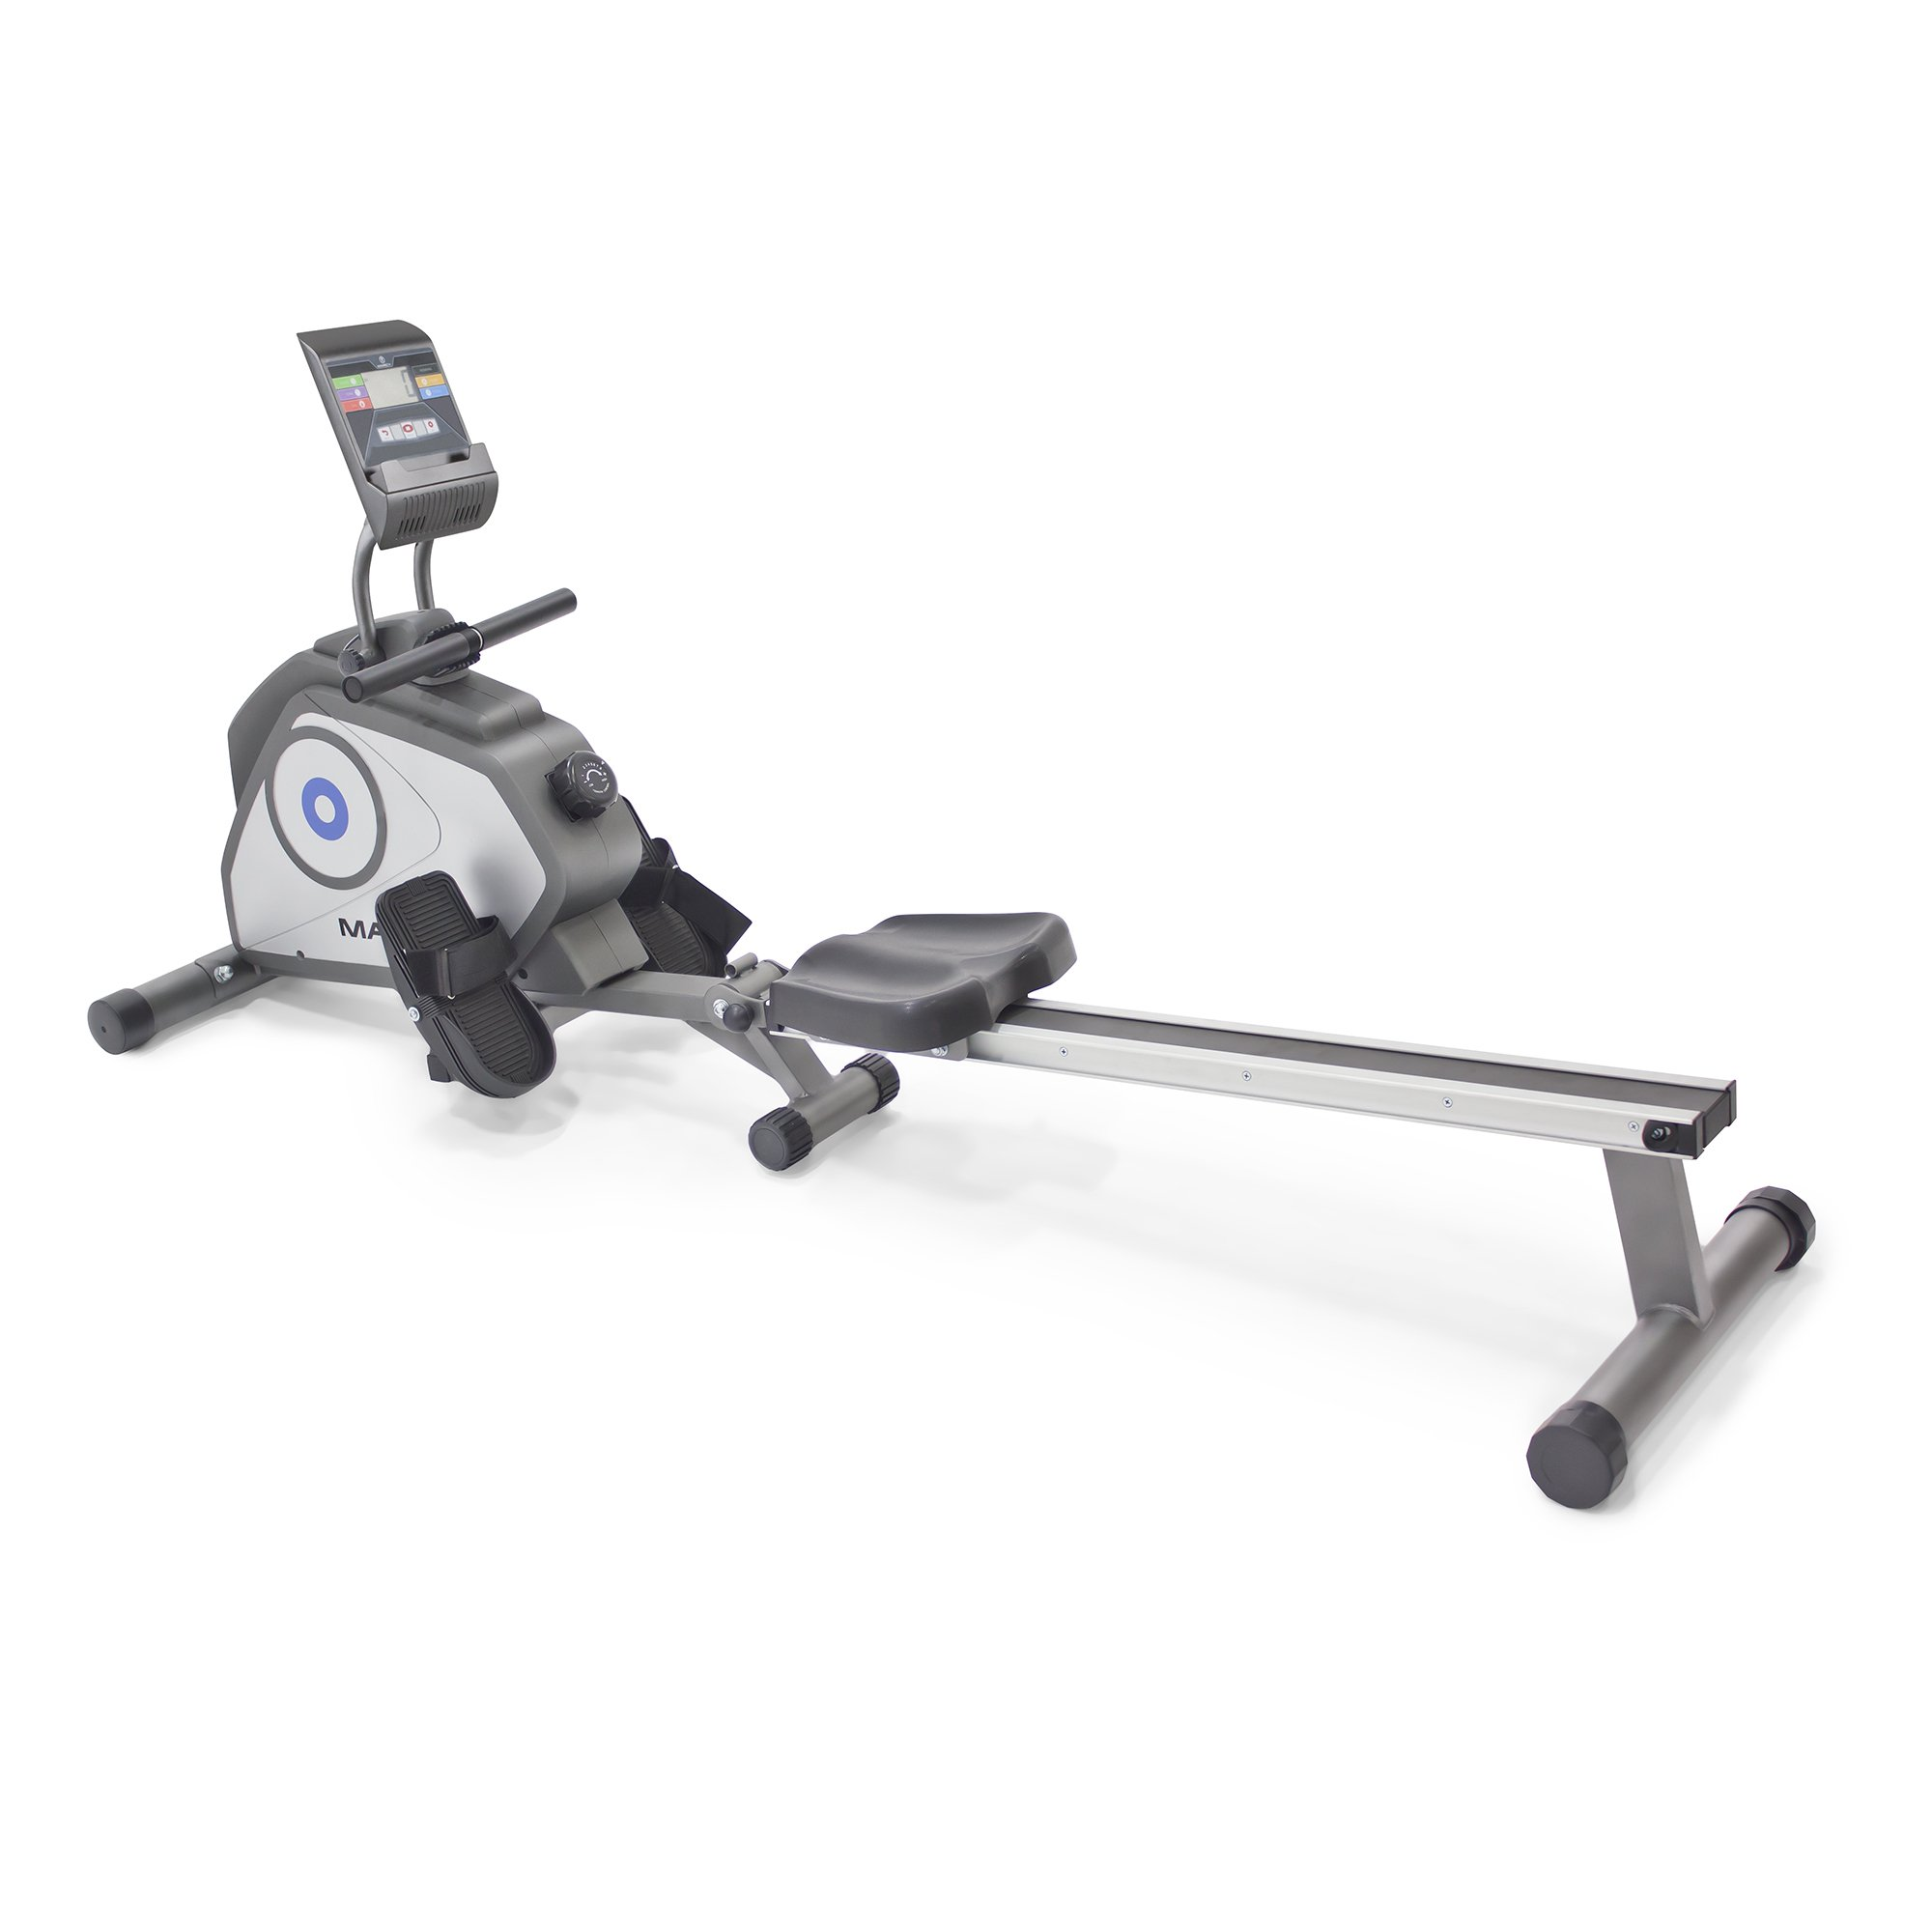 Marcy Foldable 8-Level Magnetic Resistance Rowing Machine with Transport Wheels NS-40503RW by Marcy (Image #1)